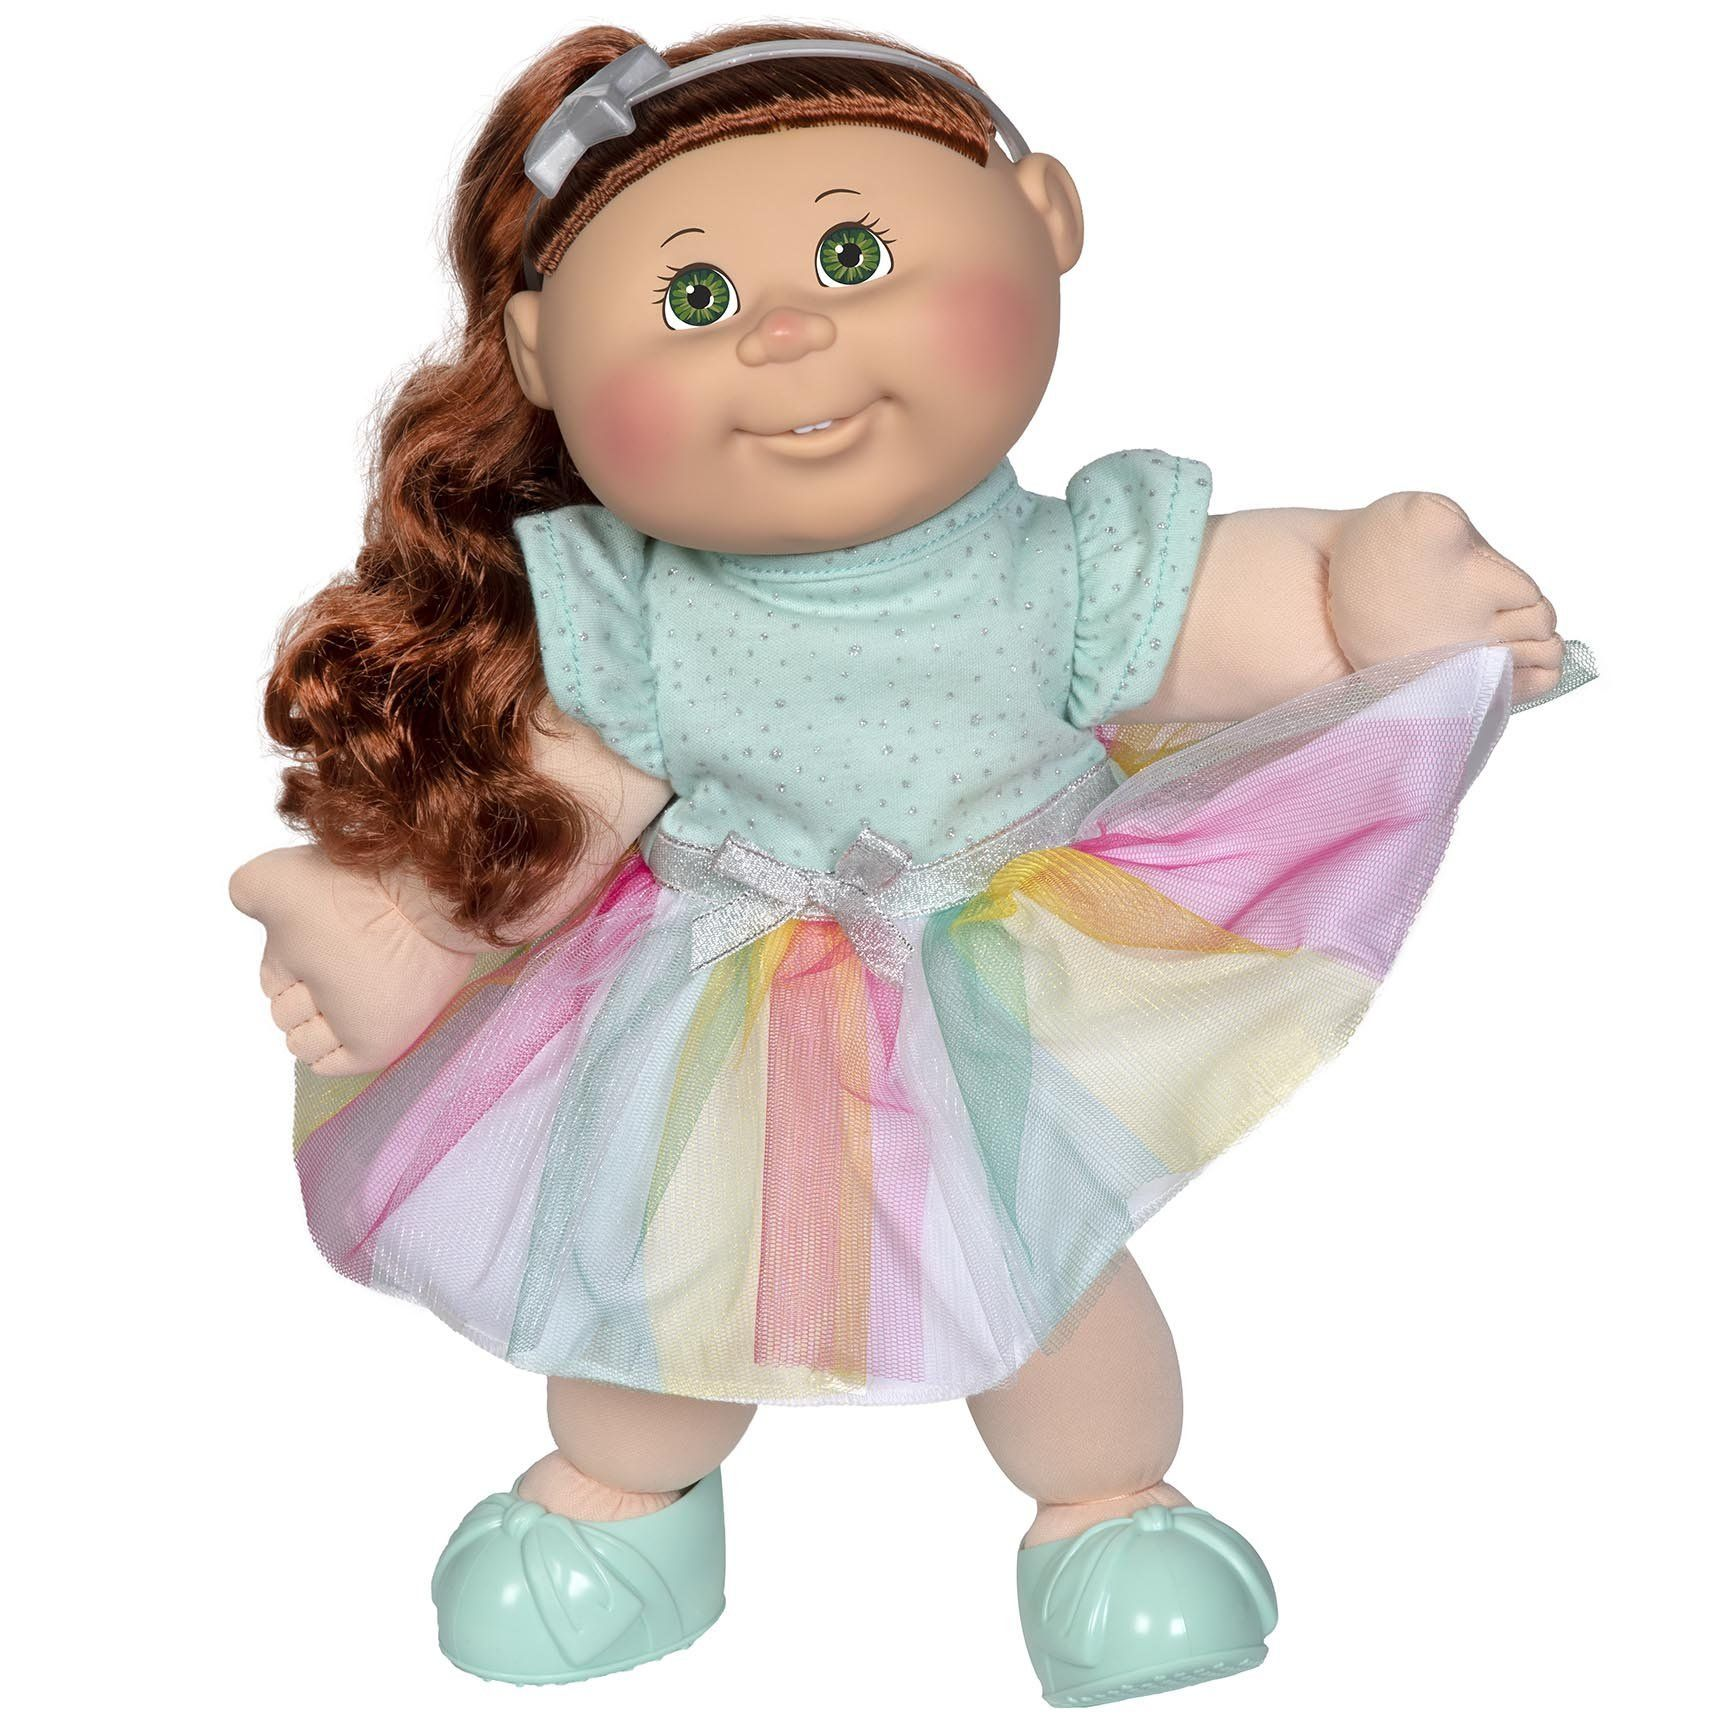 Ruched Girl 14 Inch Cabbage Patch Kids Cabbage Patch Kids Pink Heart Dress Kids